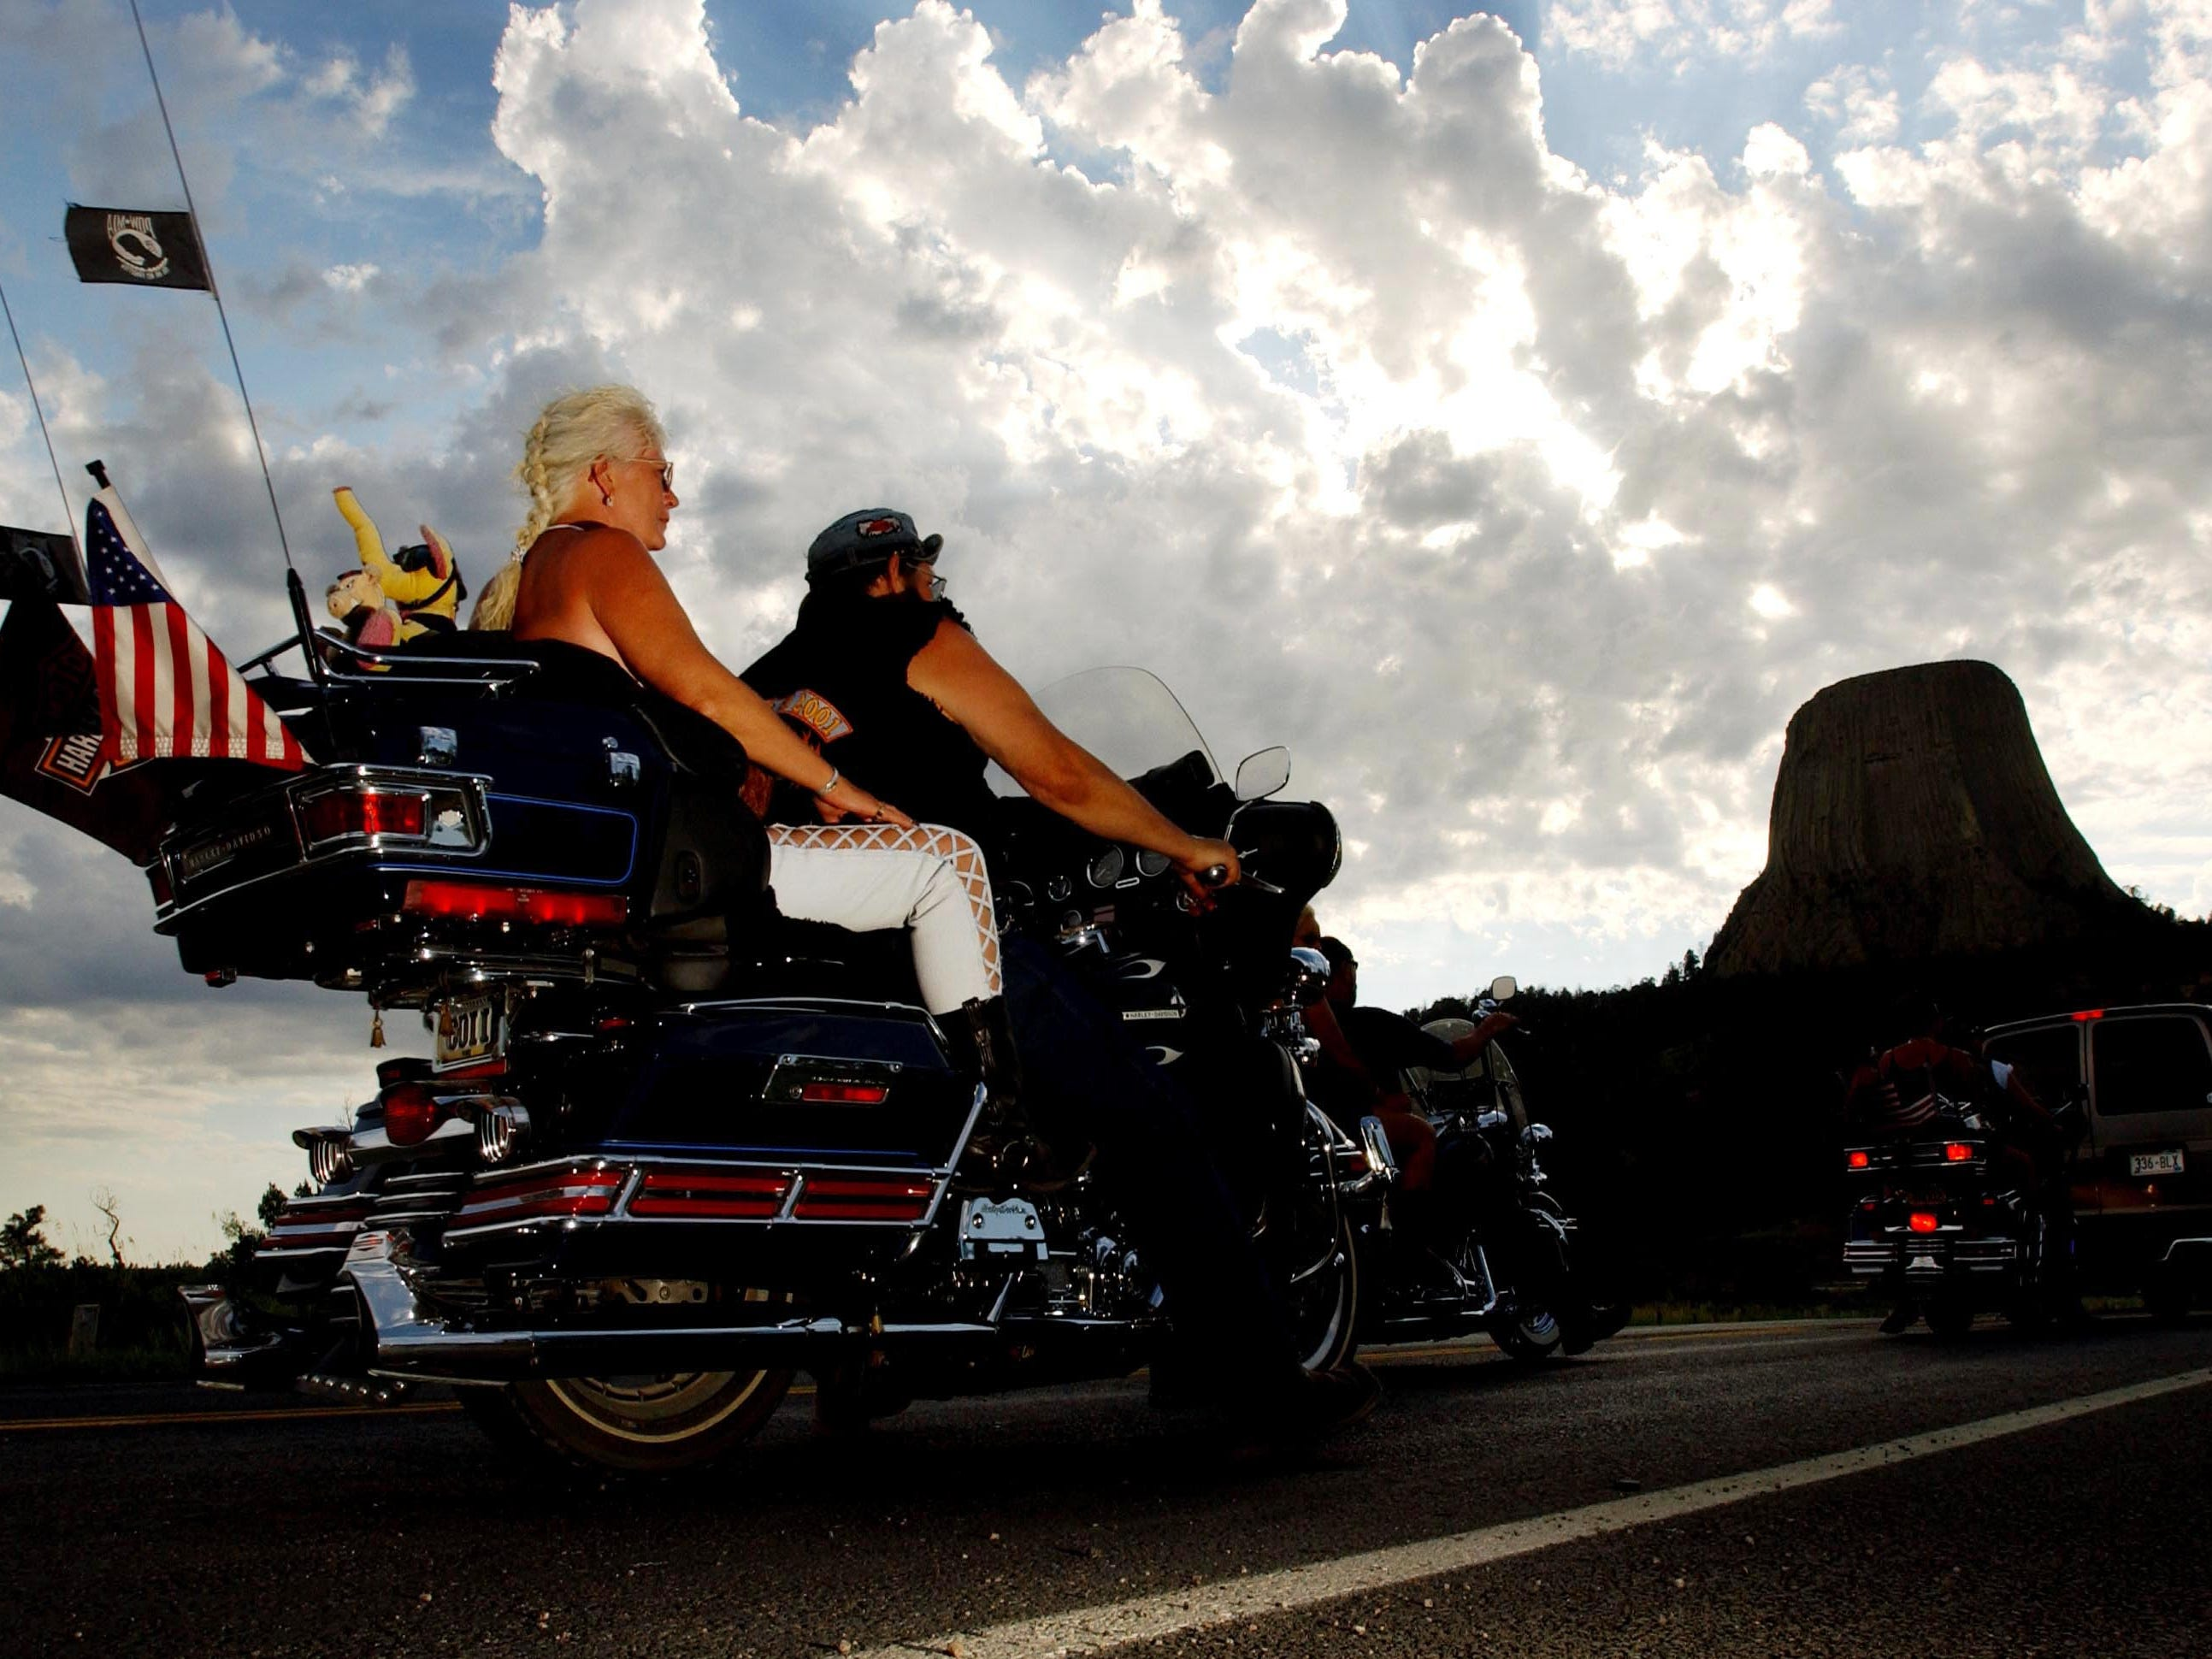 2001: Motorcylists pass Devils Tower National Monument in Wyoming, which is one of many popular destinations for cyclists attending the annual Sturgis Motorcycle Rally in Sturgis, SD.